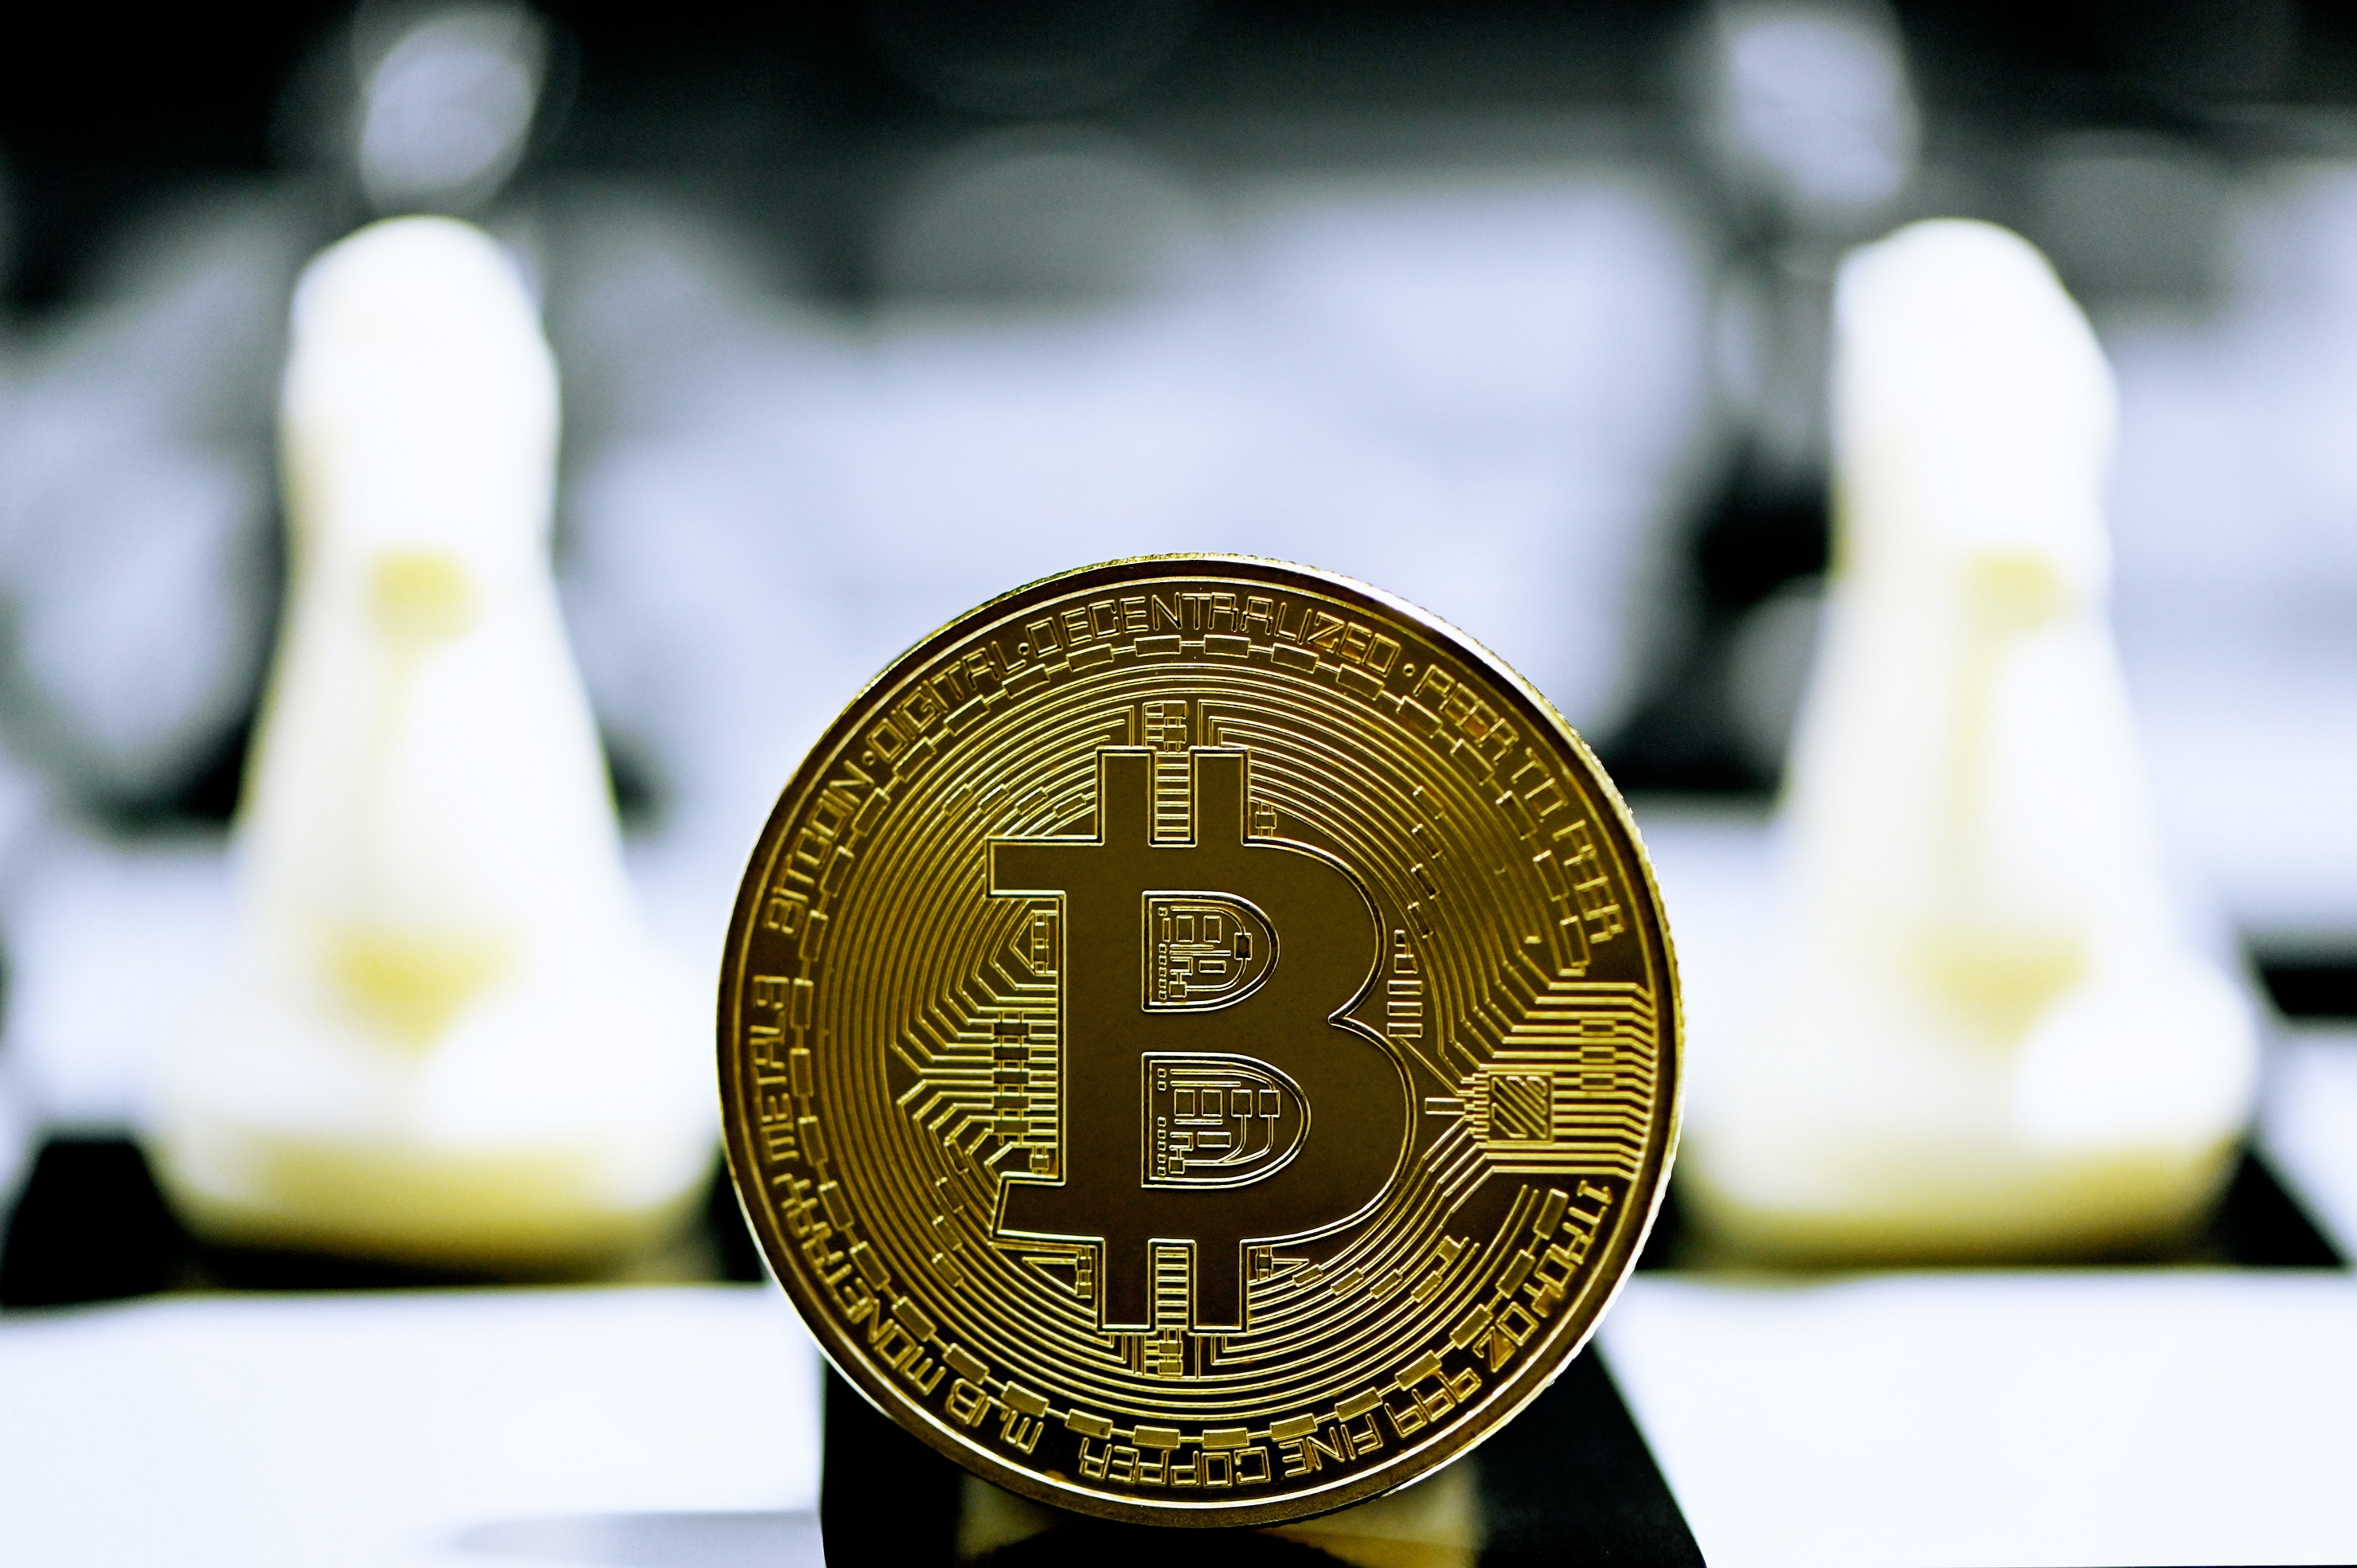 Bitcoin Trading Volume Sinks Without Decisive Retest Of $50,000